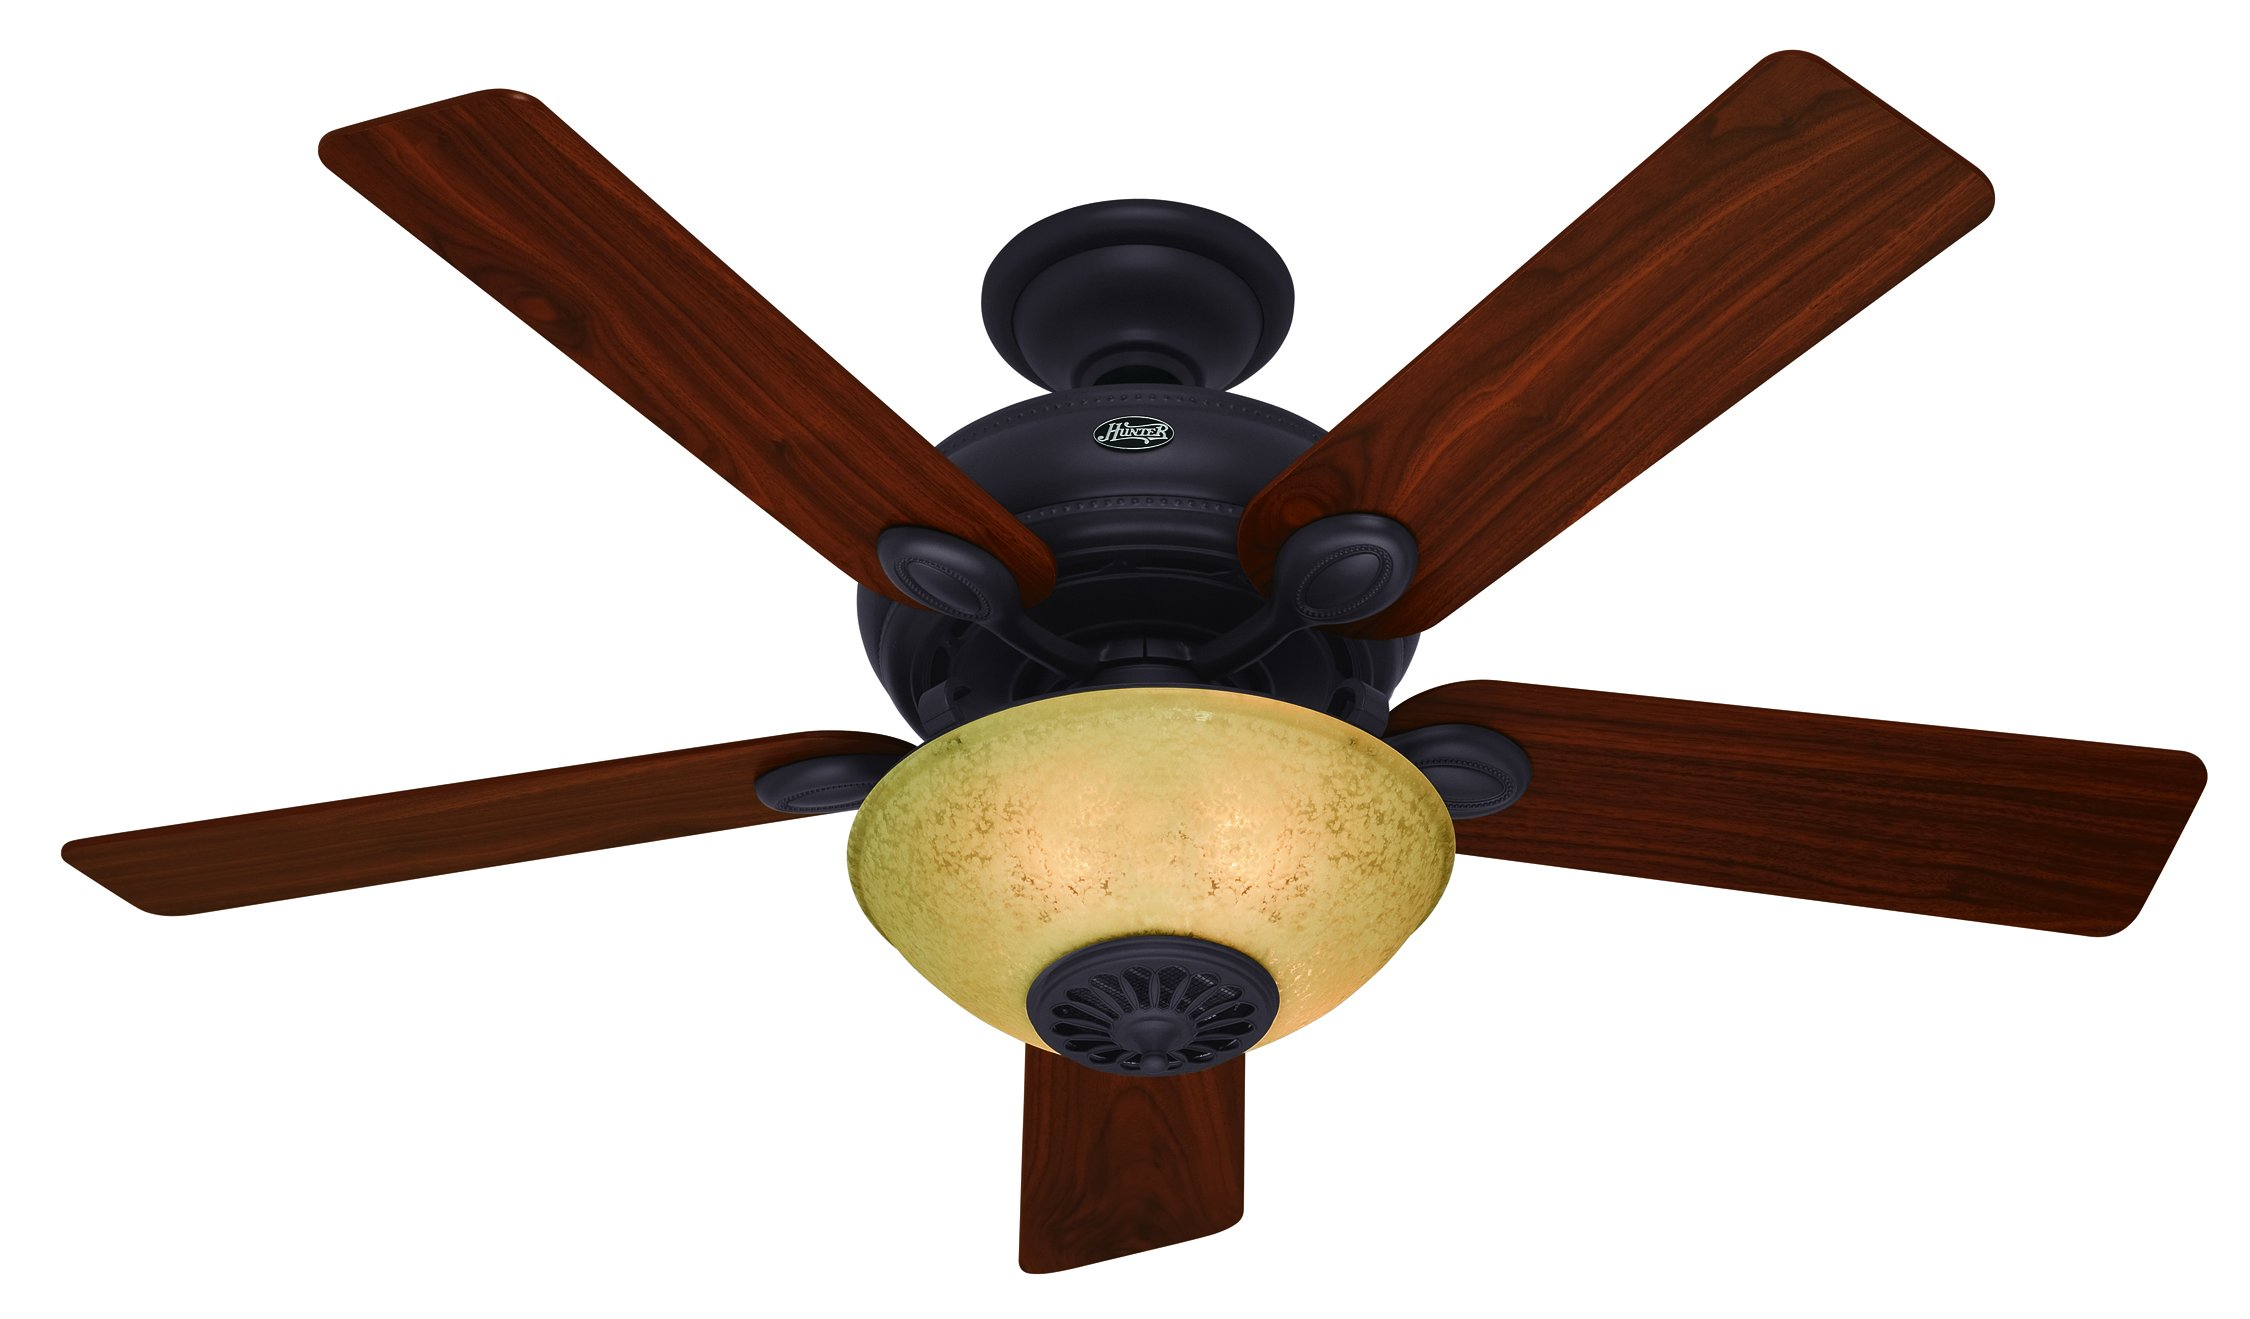 Hunter 59033 Westover Heater Fan 52-Inch New Bronze Ceiling Fan with Five Dark Walnut/Cherry Blades and Light Kit